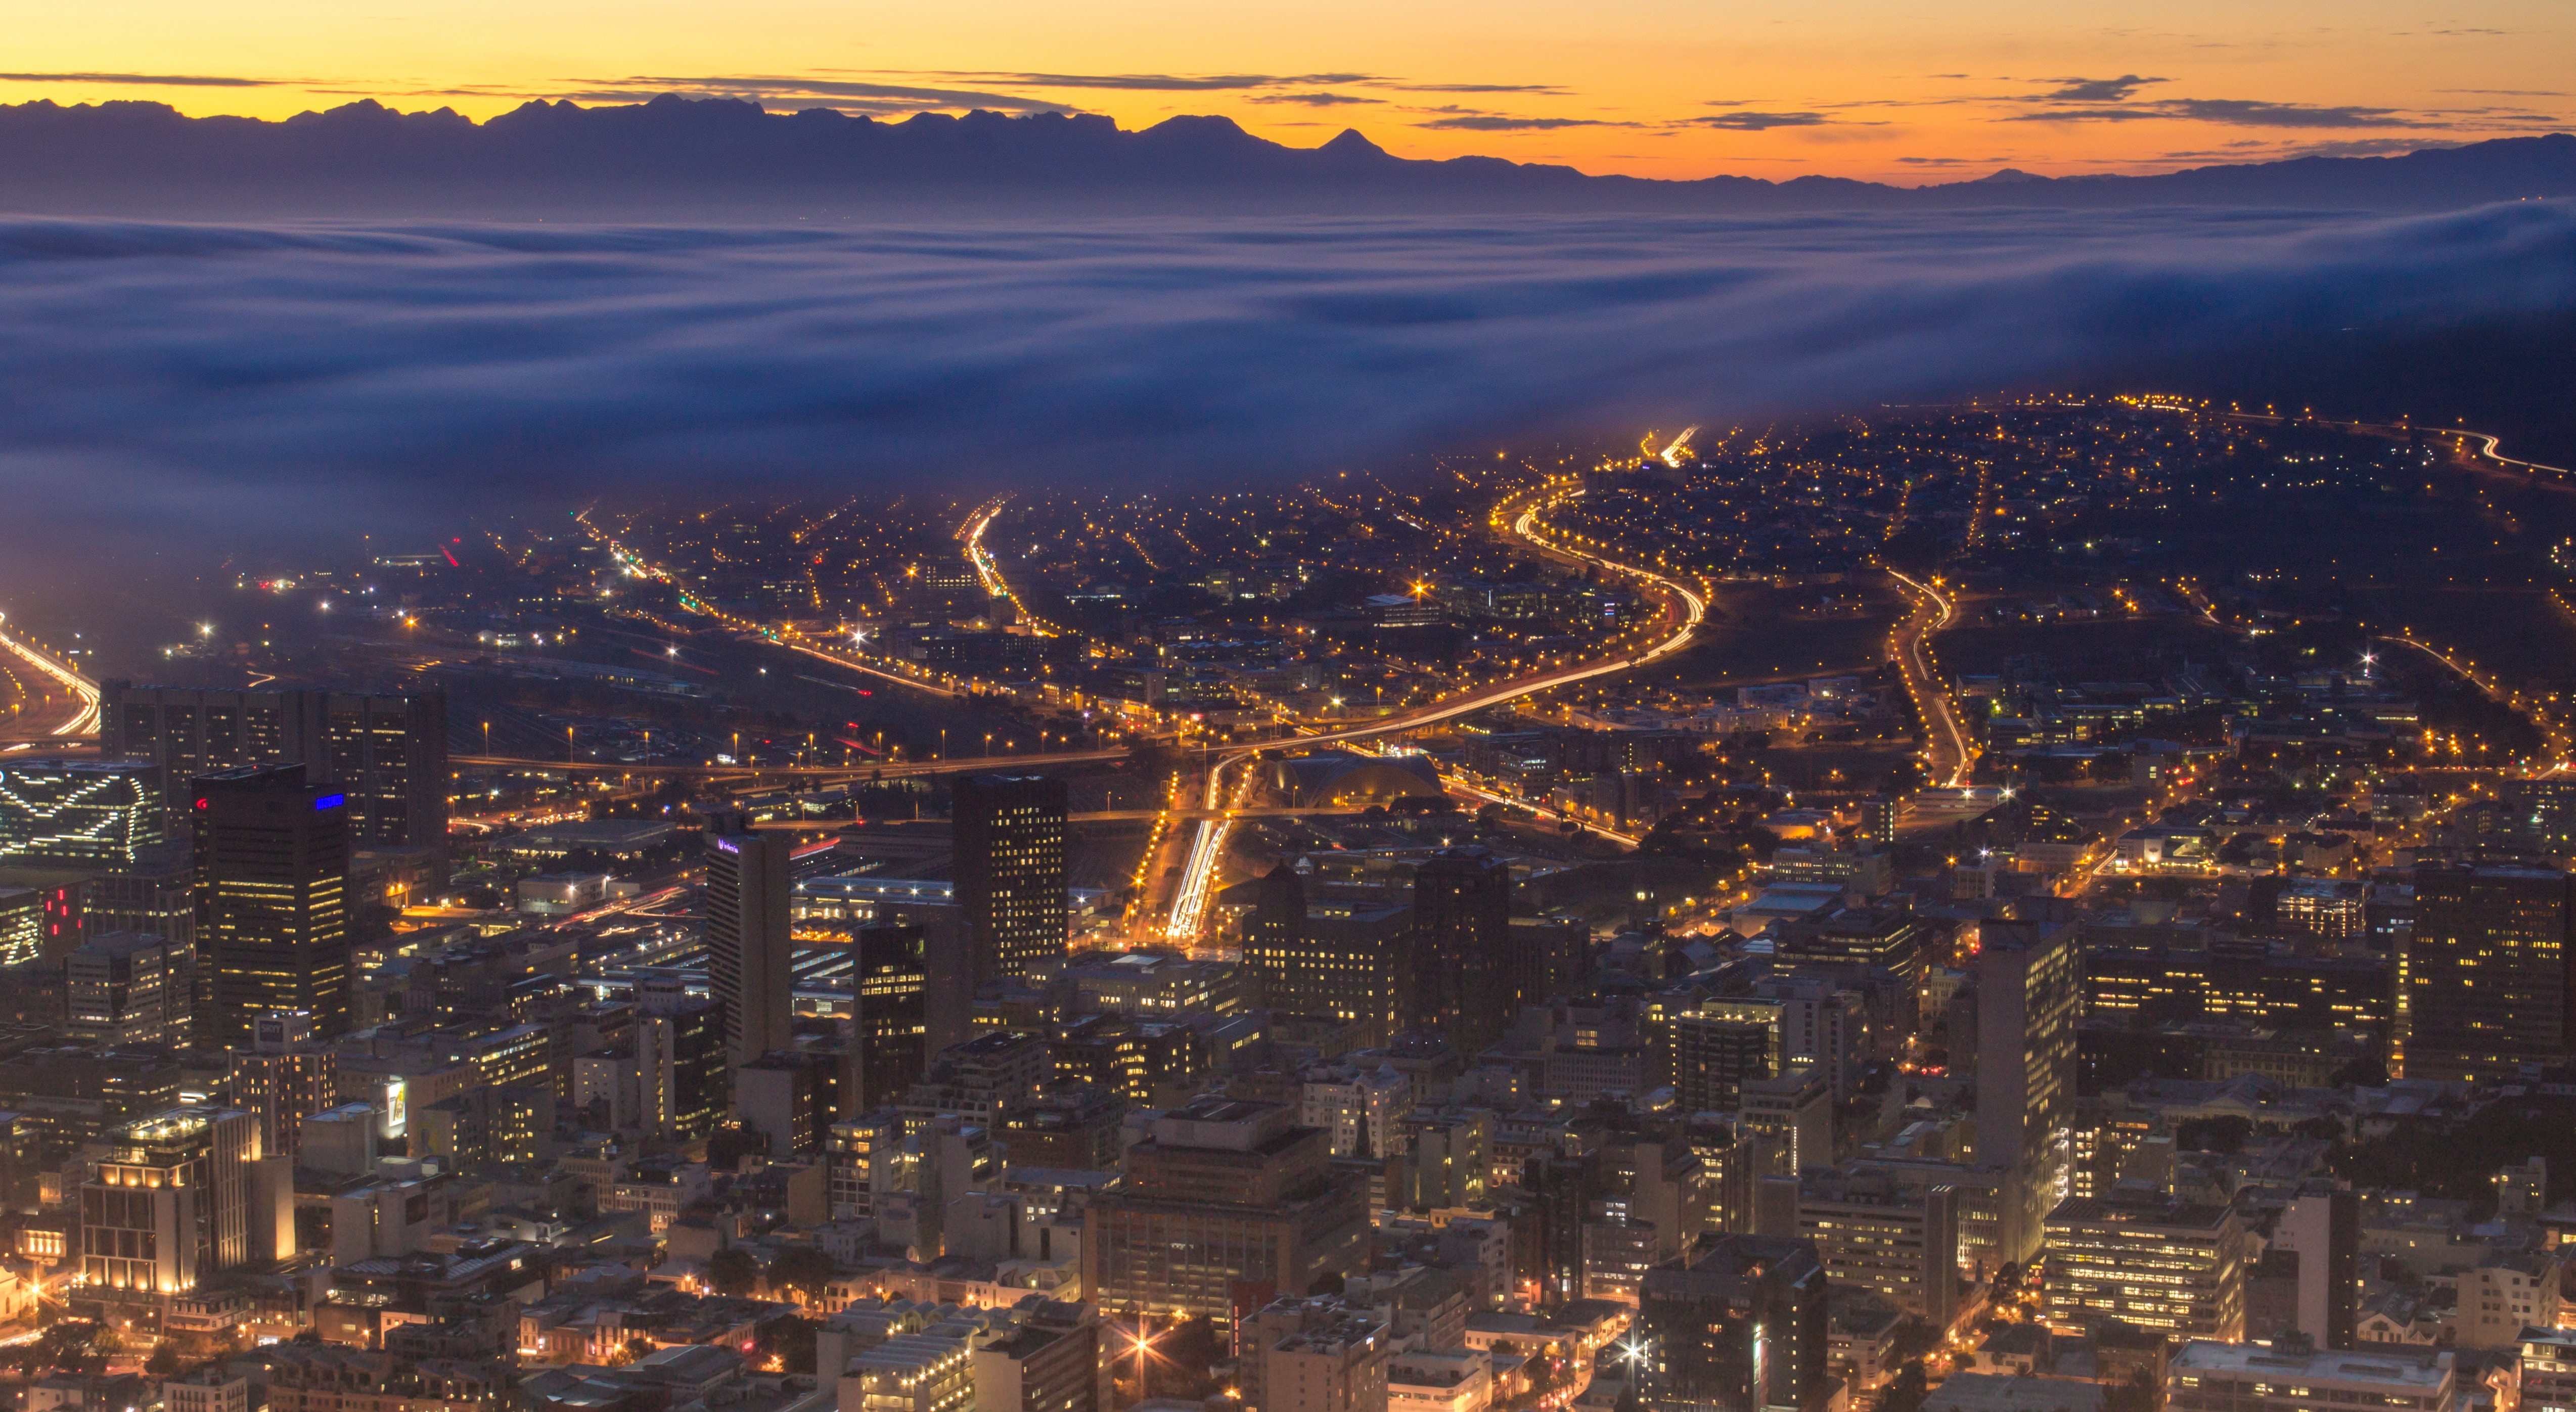 Cape Town, South Africa. Approximately 90% of the global urban shift will happen in Africa and Asia.